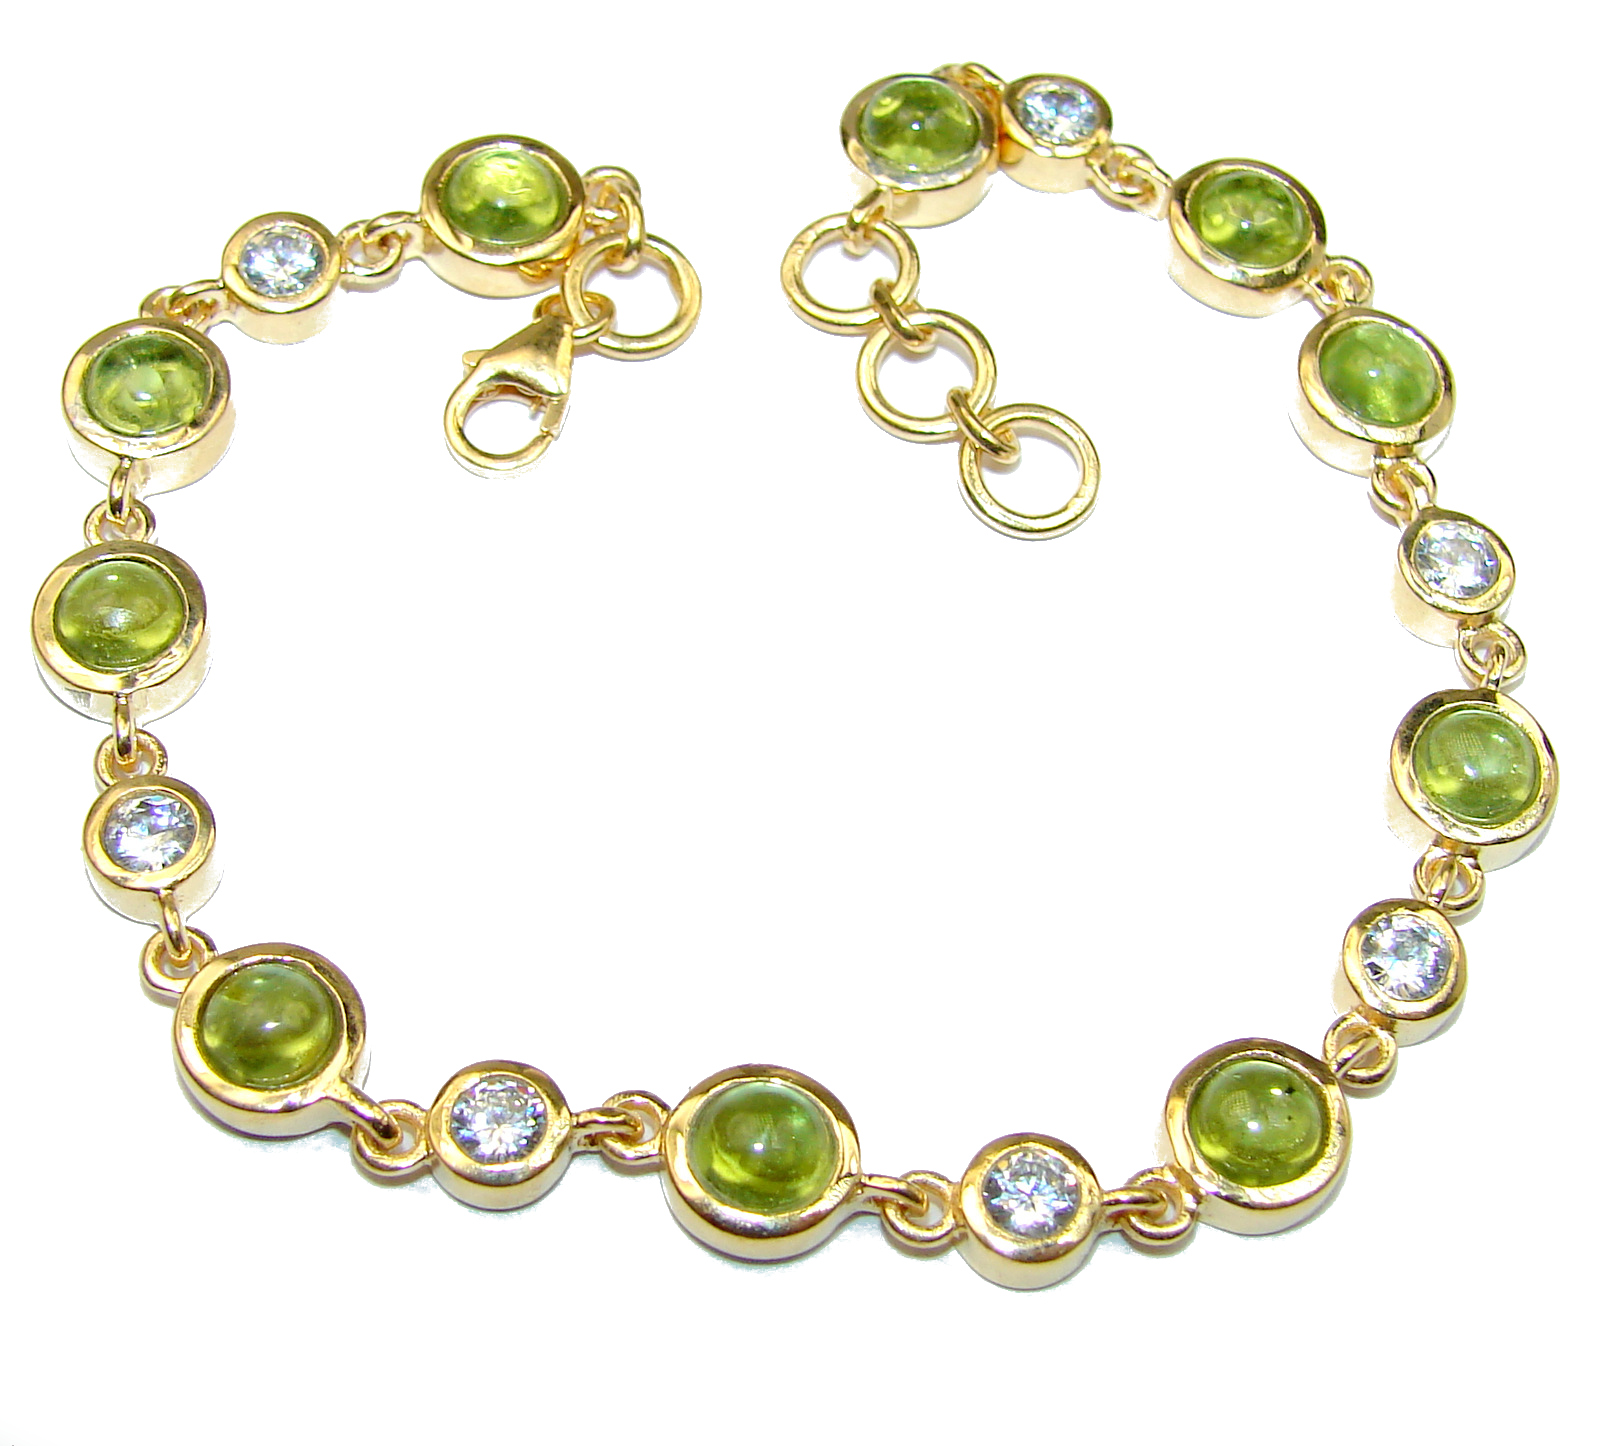 Authentic Peridot White Topaz 14K Gold over .925 Sterling Silver handmade Bracelet